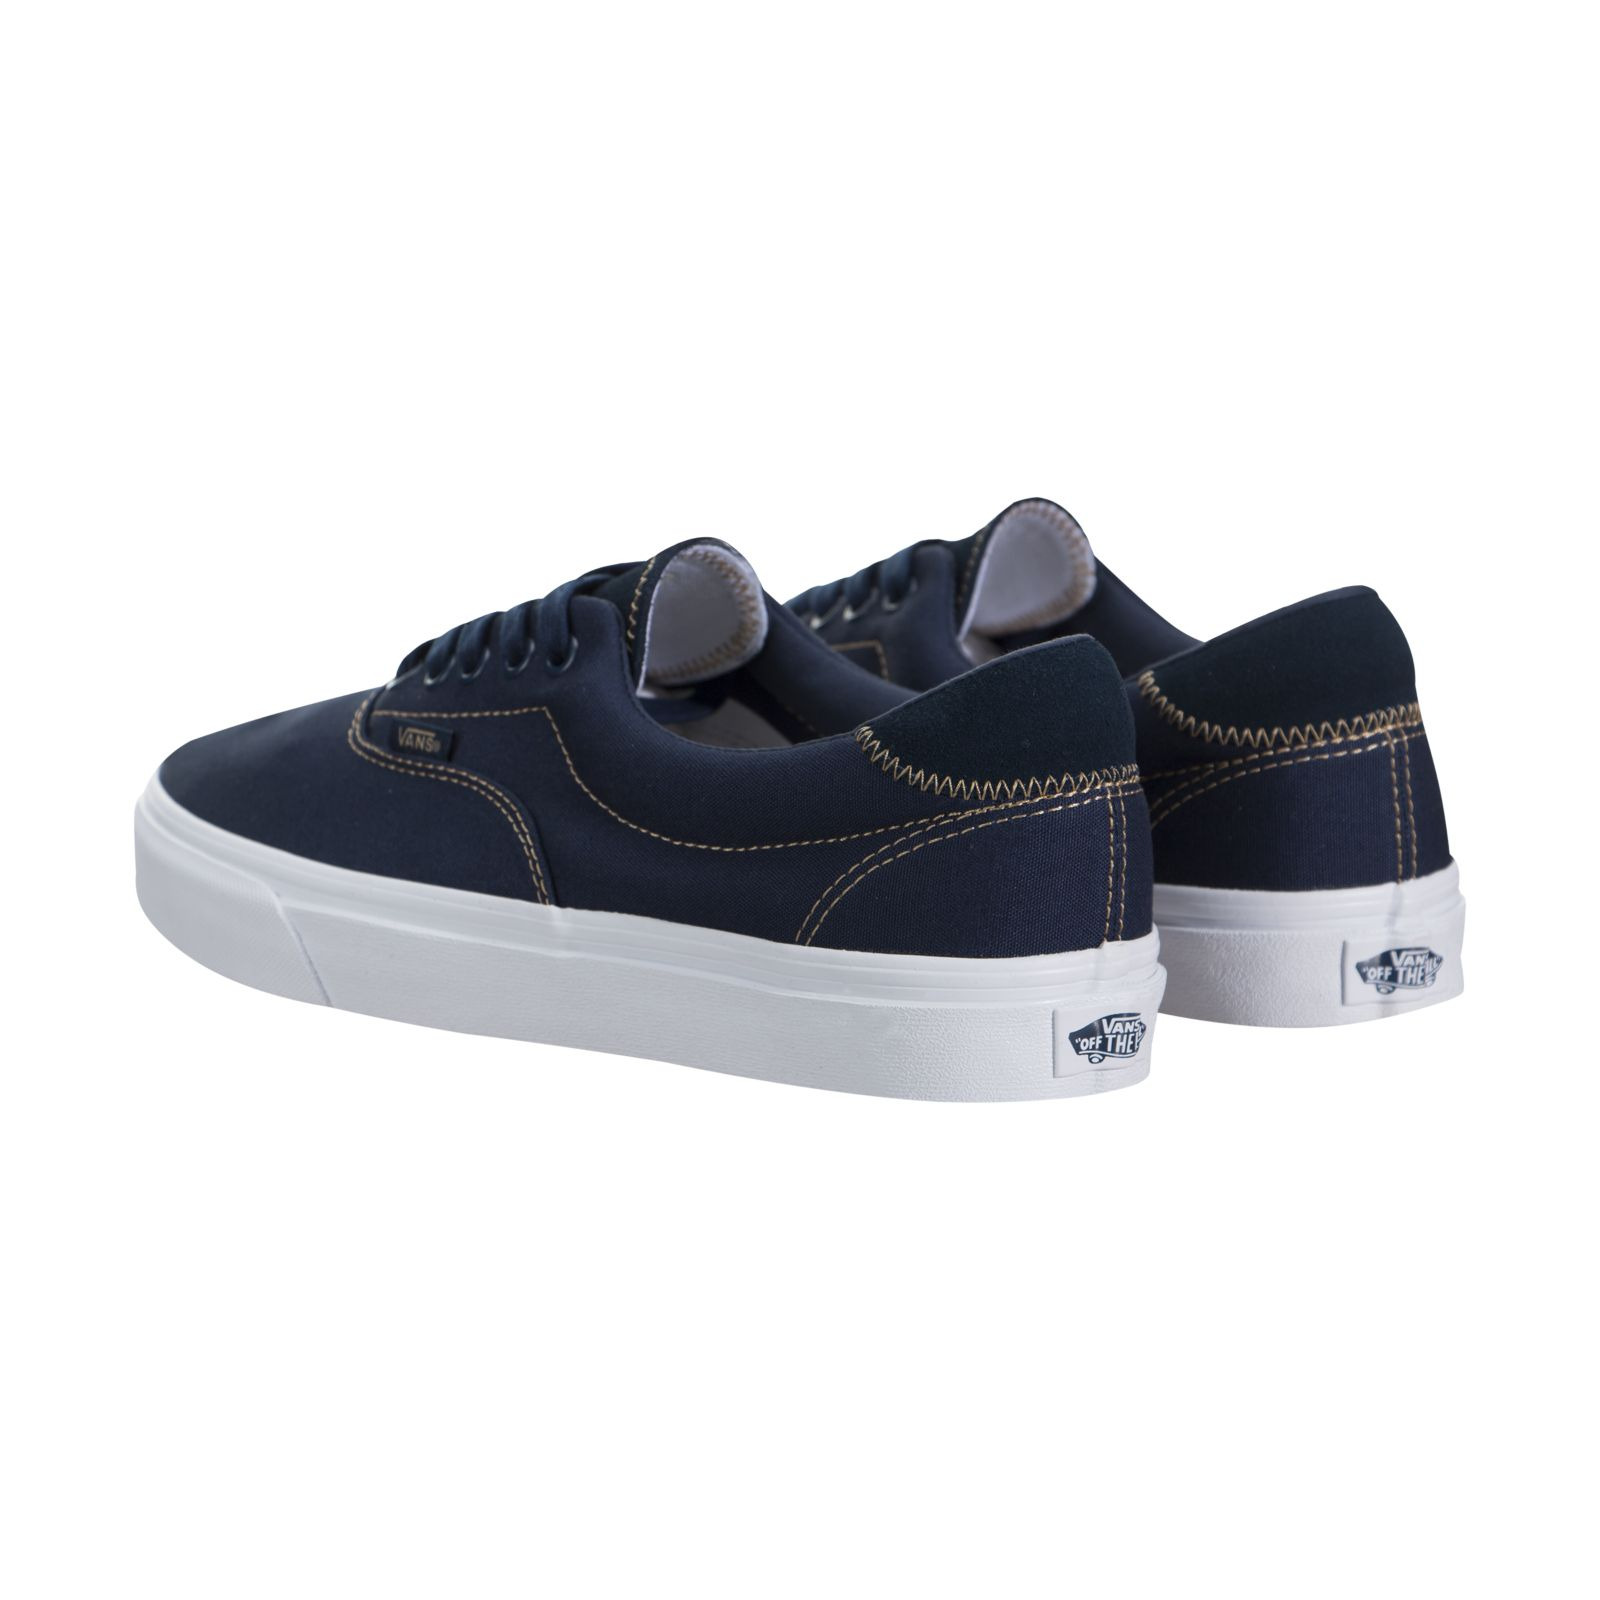 e0d9683073 ... 59 Blue Sand Canvas Classic Men Skate Boarding Shoes SNEAKERS 71010225  9.5. About this product. Picture 1 of 5  Picture 2 of 5  Picture 3 of 5   Picture ...